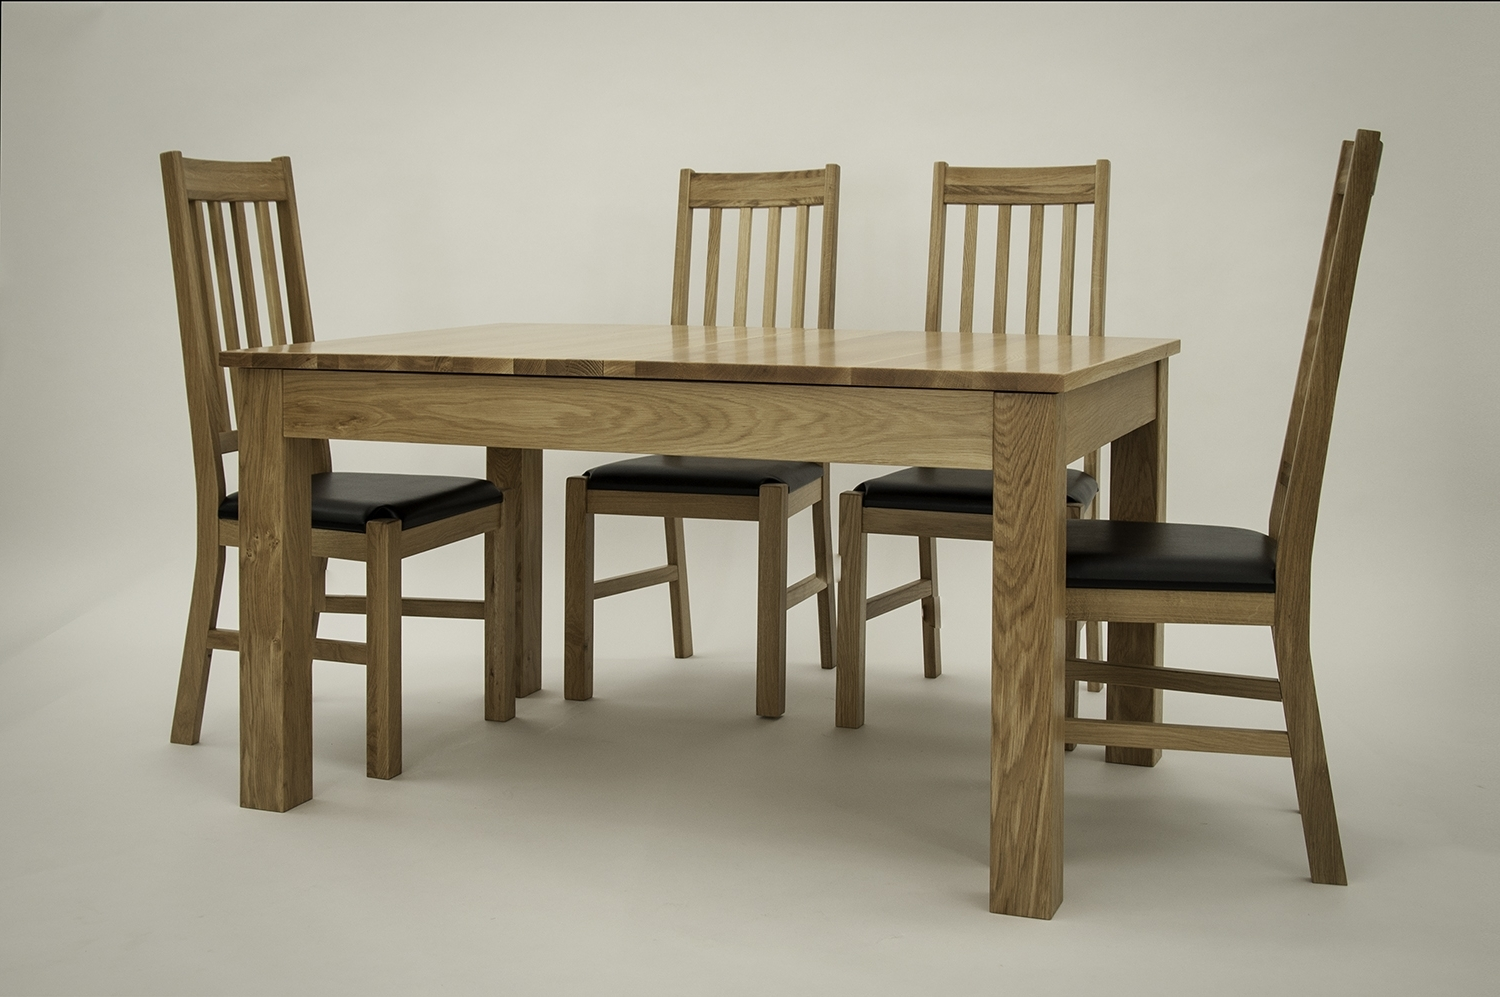 Widely Used Extending Oak Dining Table Set With 6 Or 8 Chairs, Oak Extending For Oak Extending Dining Tables And 8 Chairs (View 25 of 25)